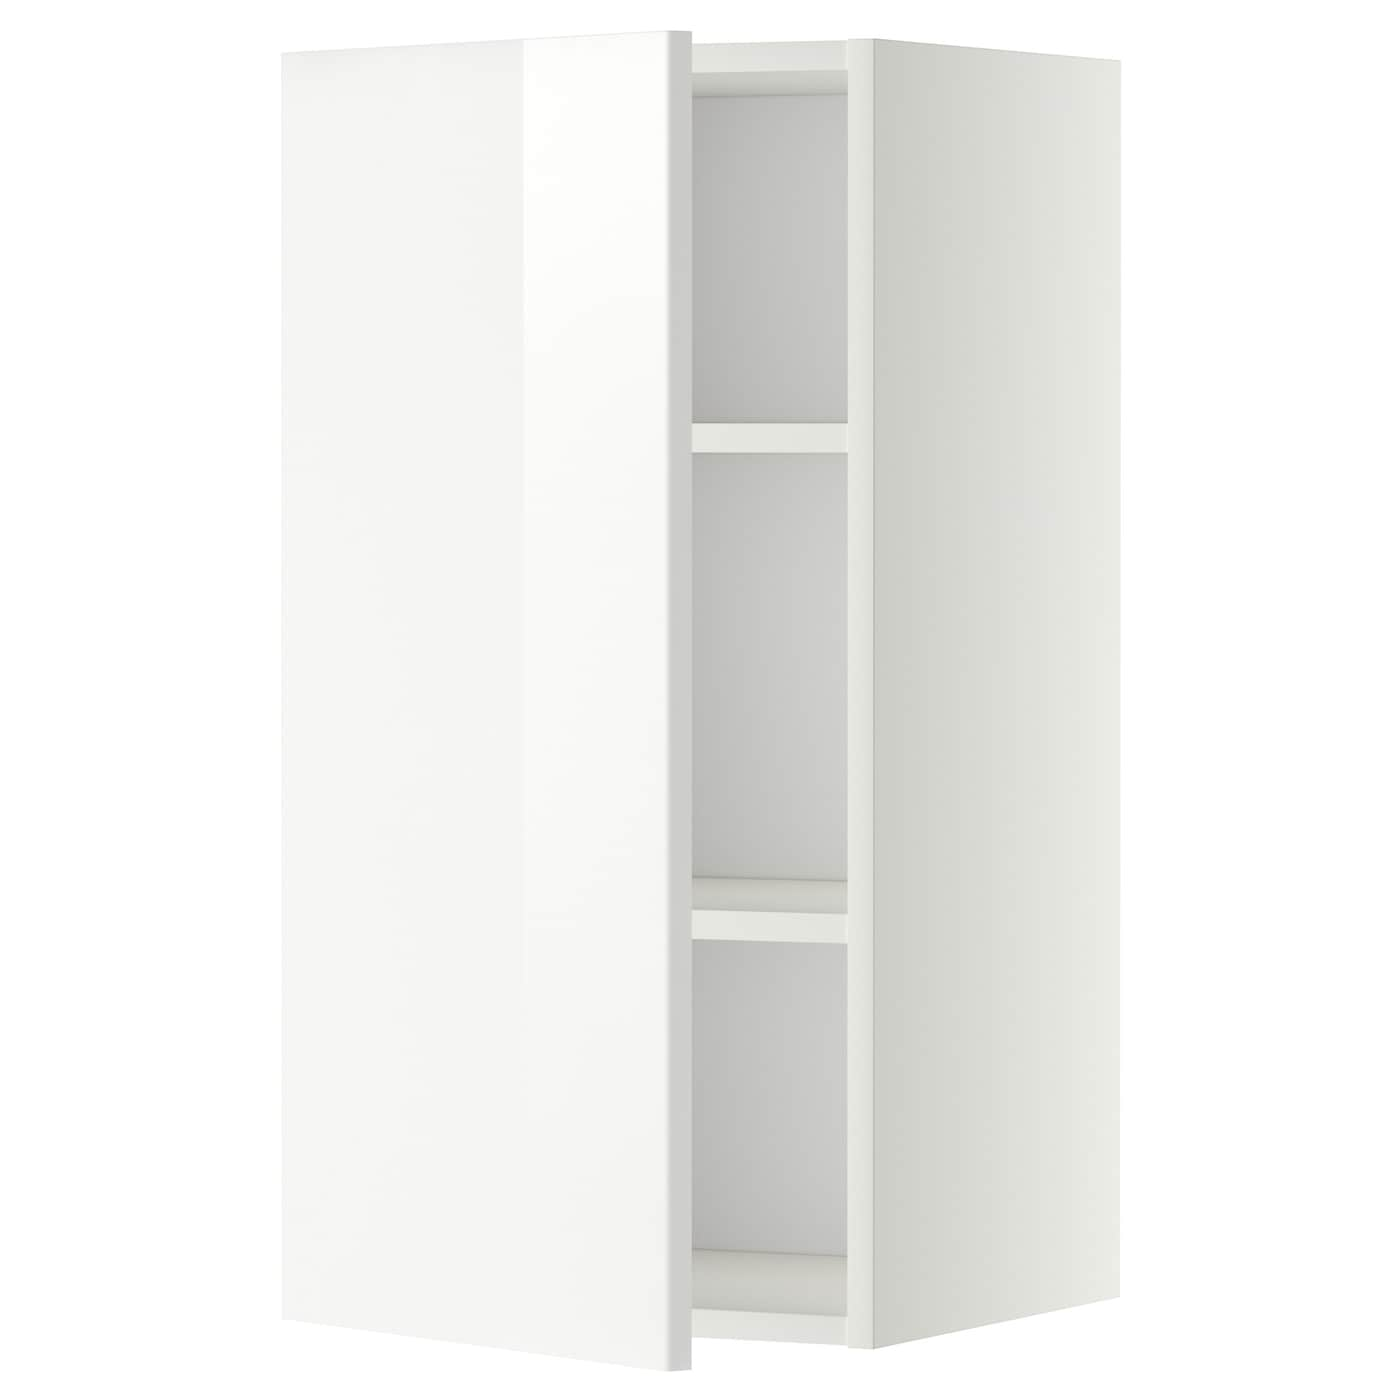 Wall Cabinet With Shelves Metod White, Ringhult White